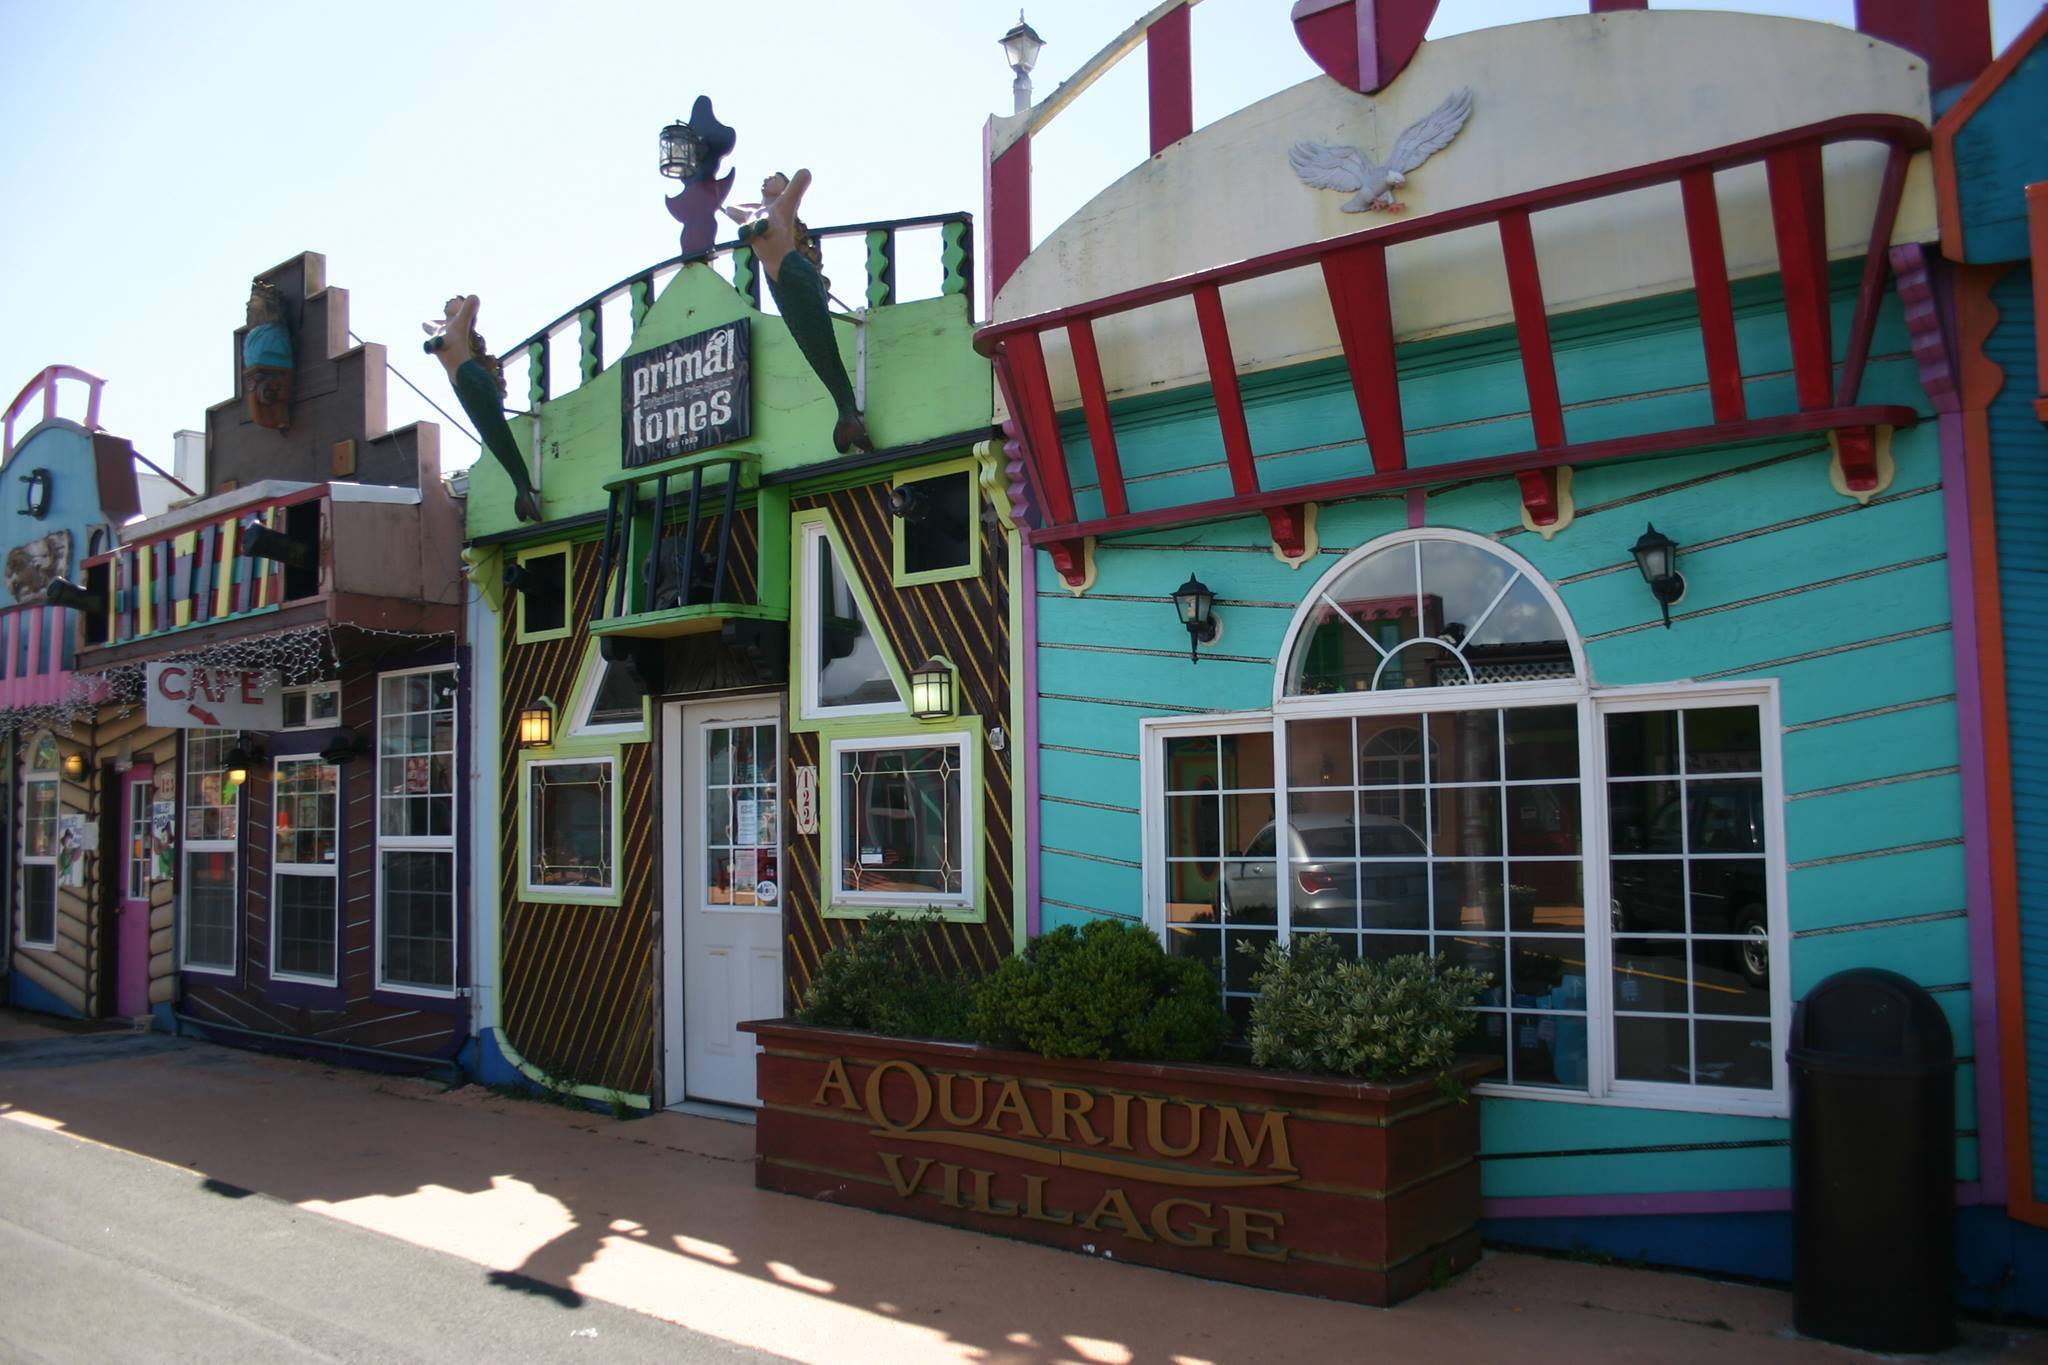 Aquarium Village.jpg